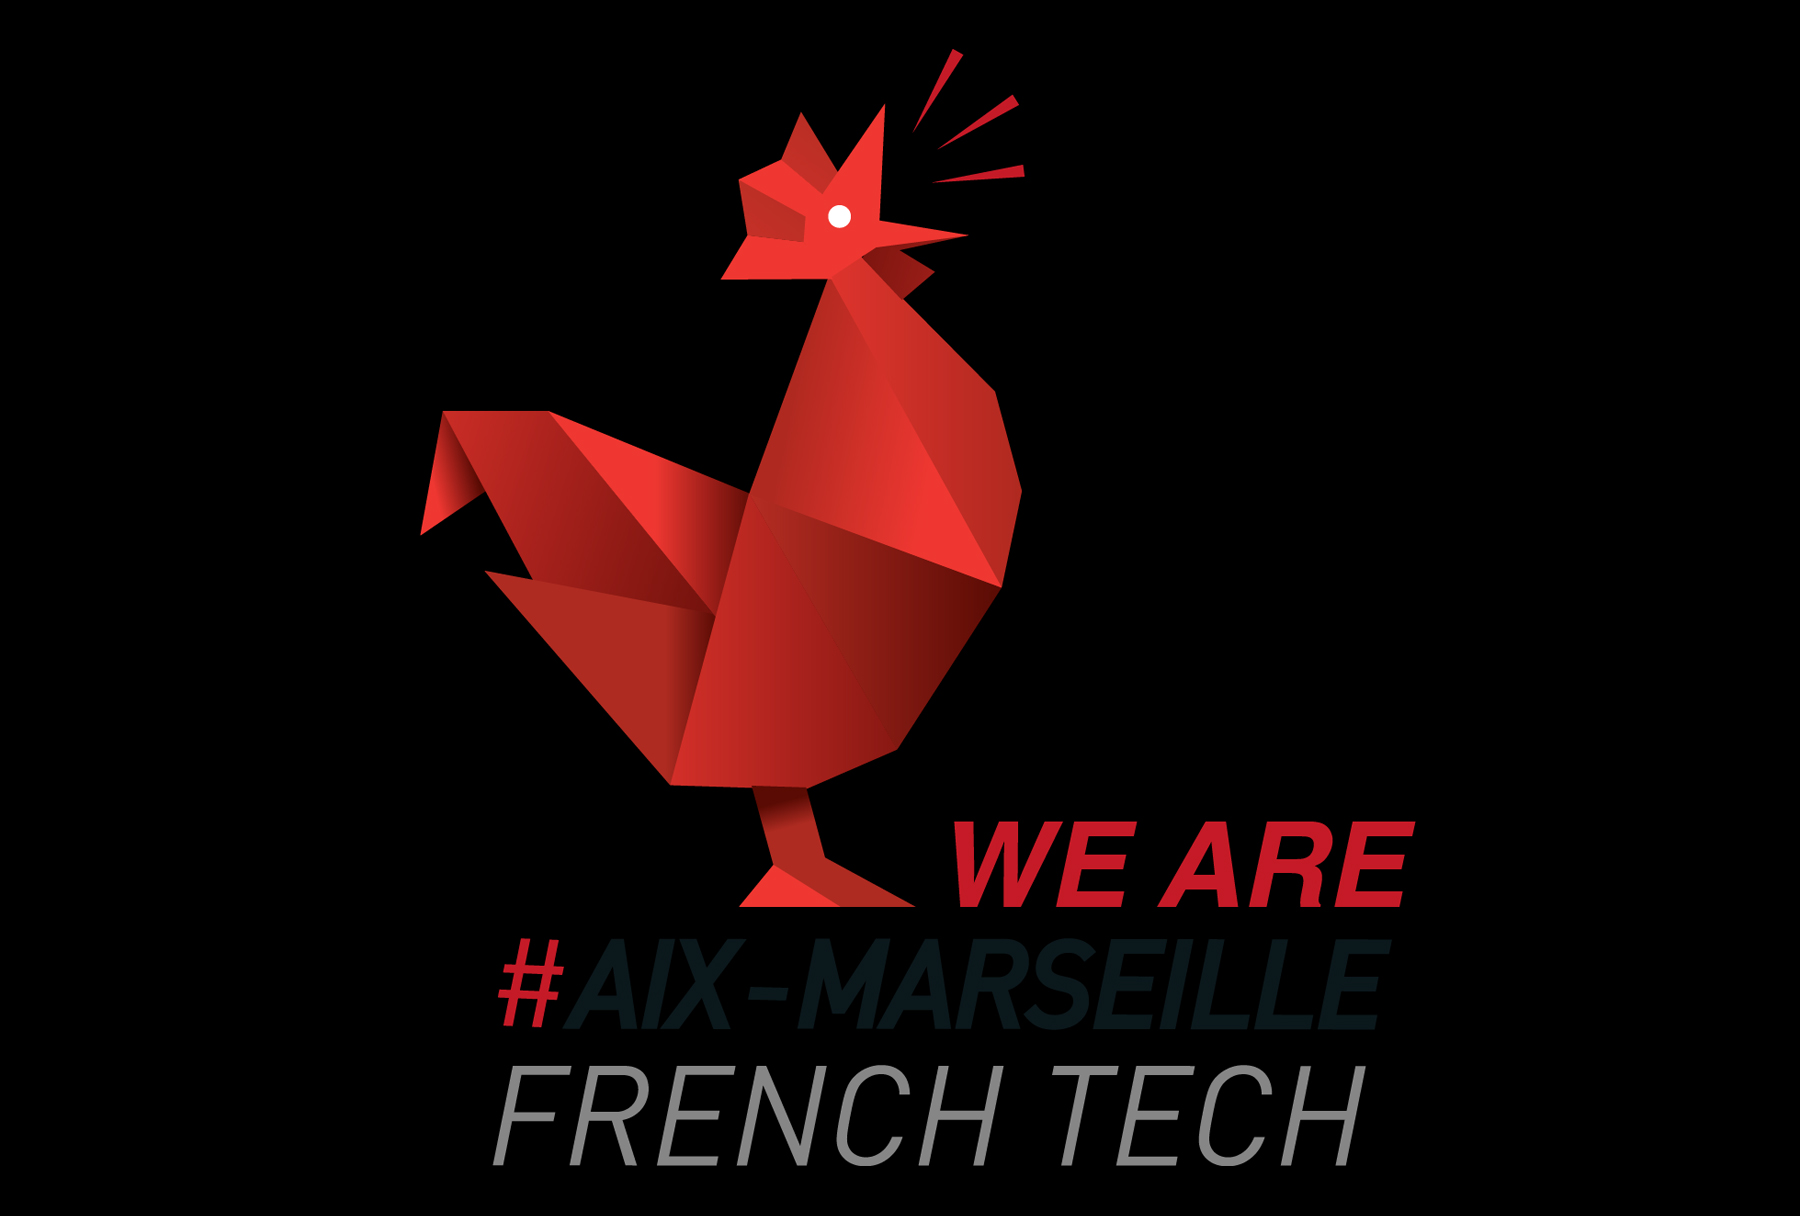 Aix Marseille French Tech